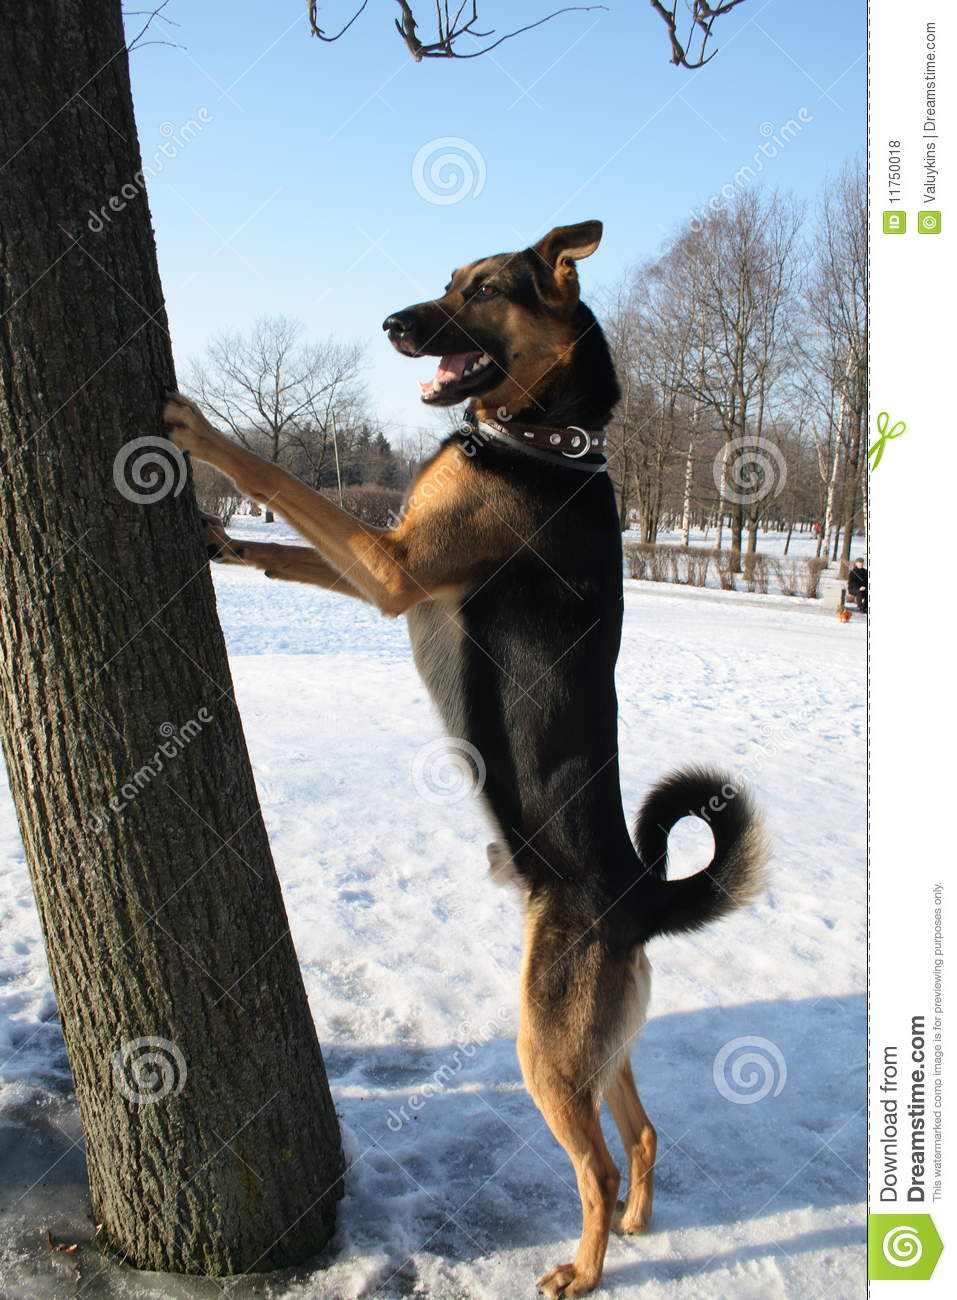 standing dog royalty free stock photos   image 11750018